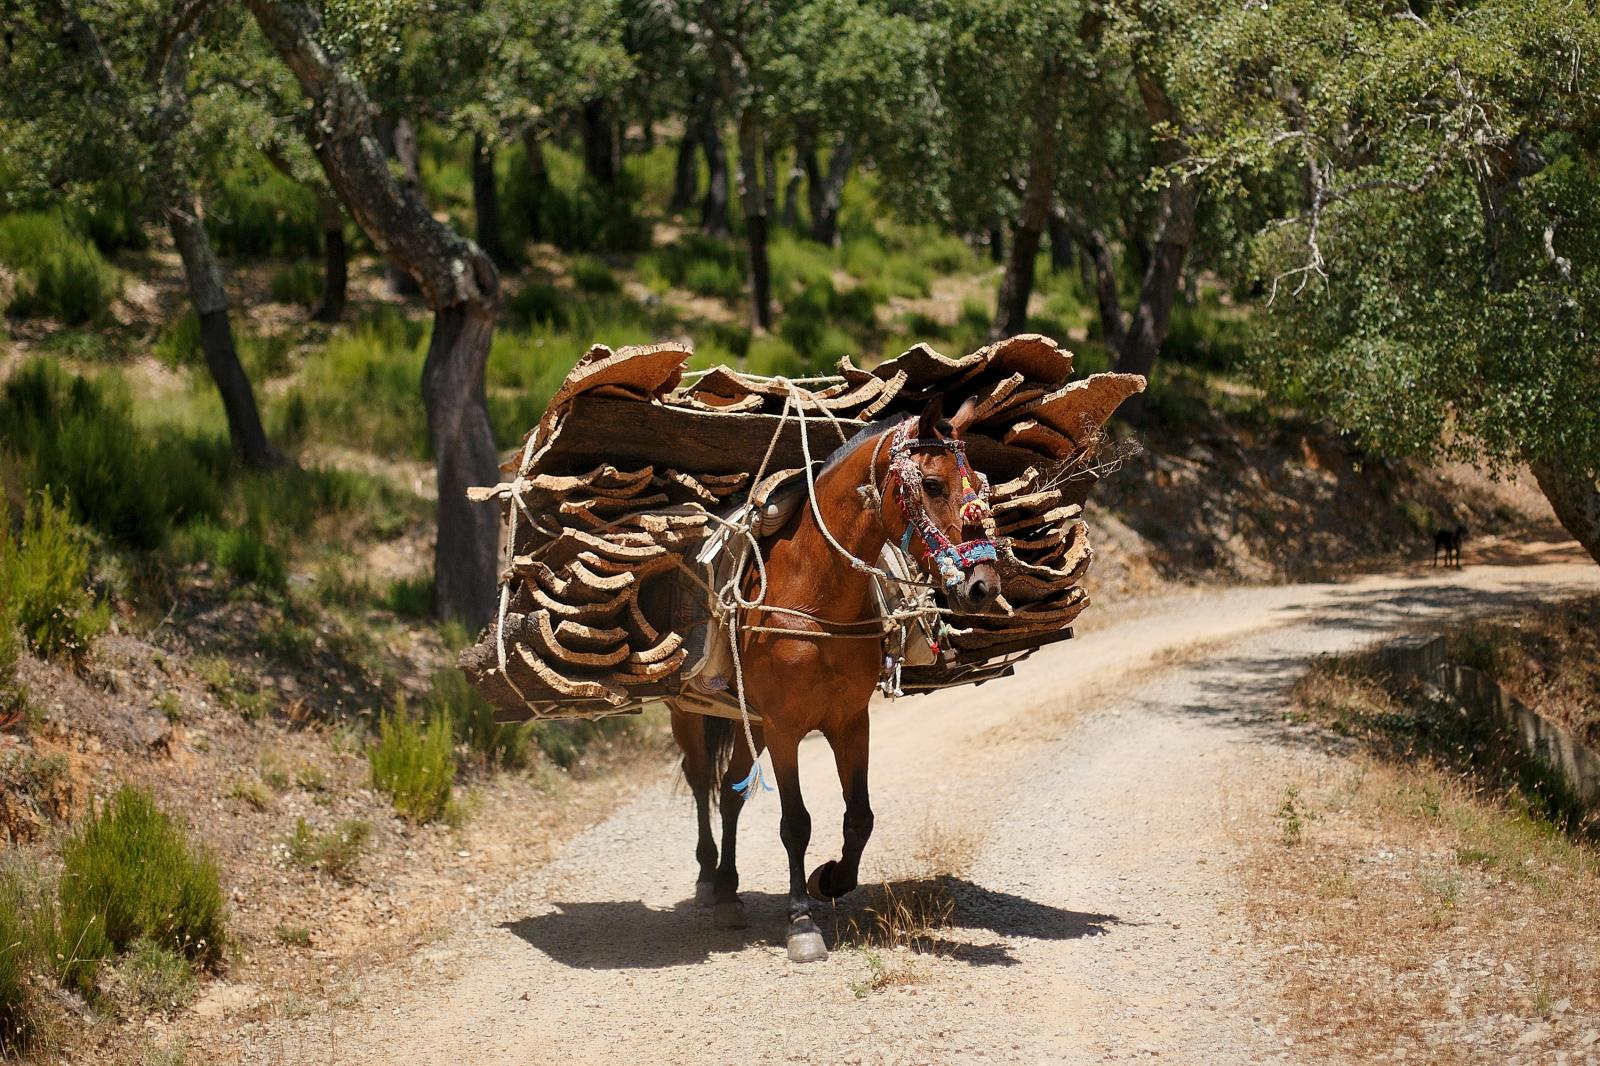 Cork bark being transported on a horse in Portugal.